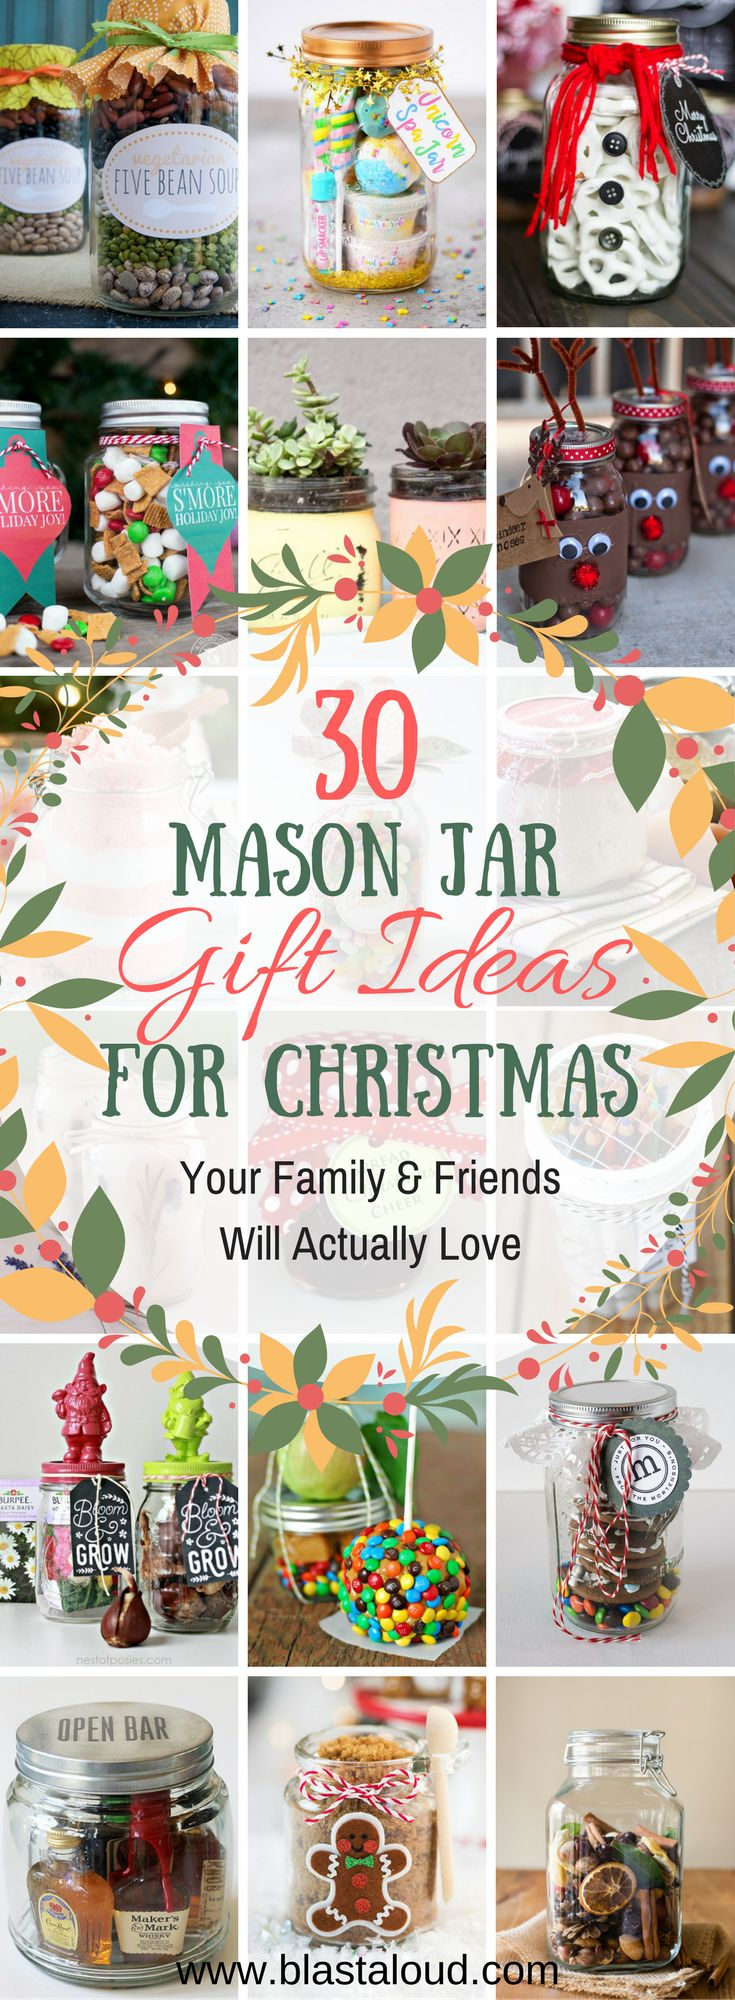 These DIY Mason Jar gift ideas for Christmas are awesome! Now I don't have to worry about what gifts to get for my family - I know they will all absolutely love these gift jars! #christmas #christmasgifts #masonjar #masonjargifts #giftideas #giftinajar